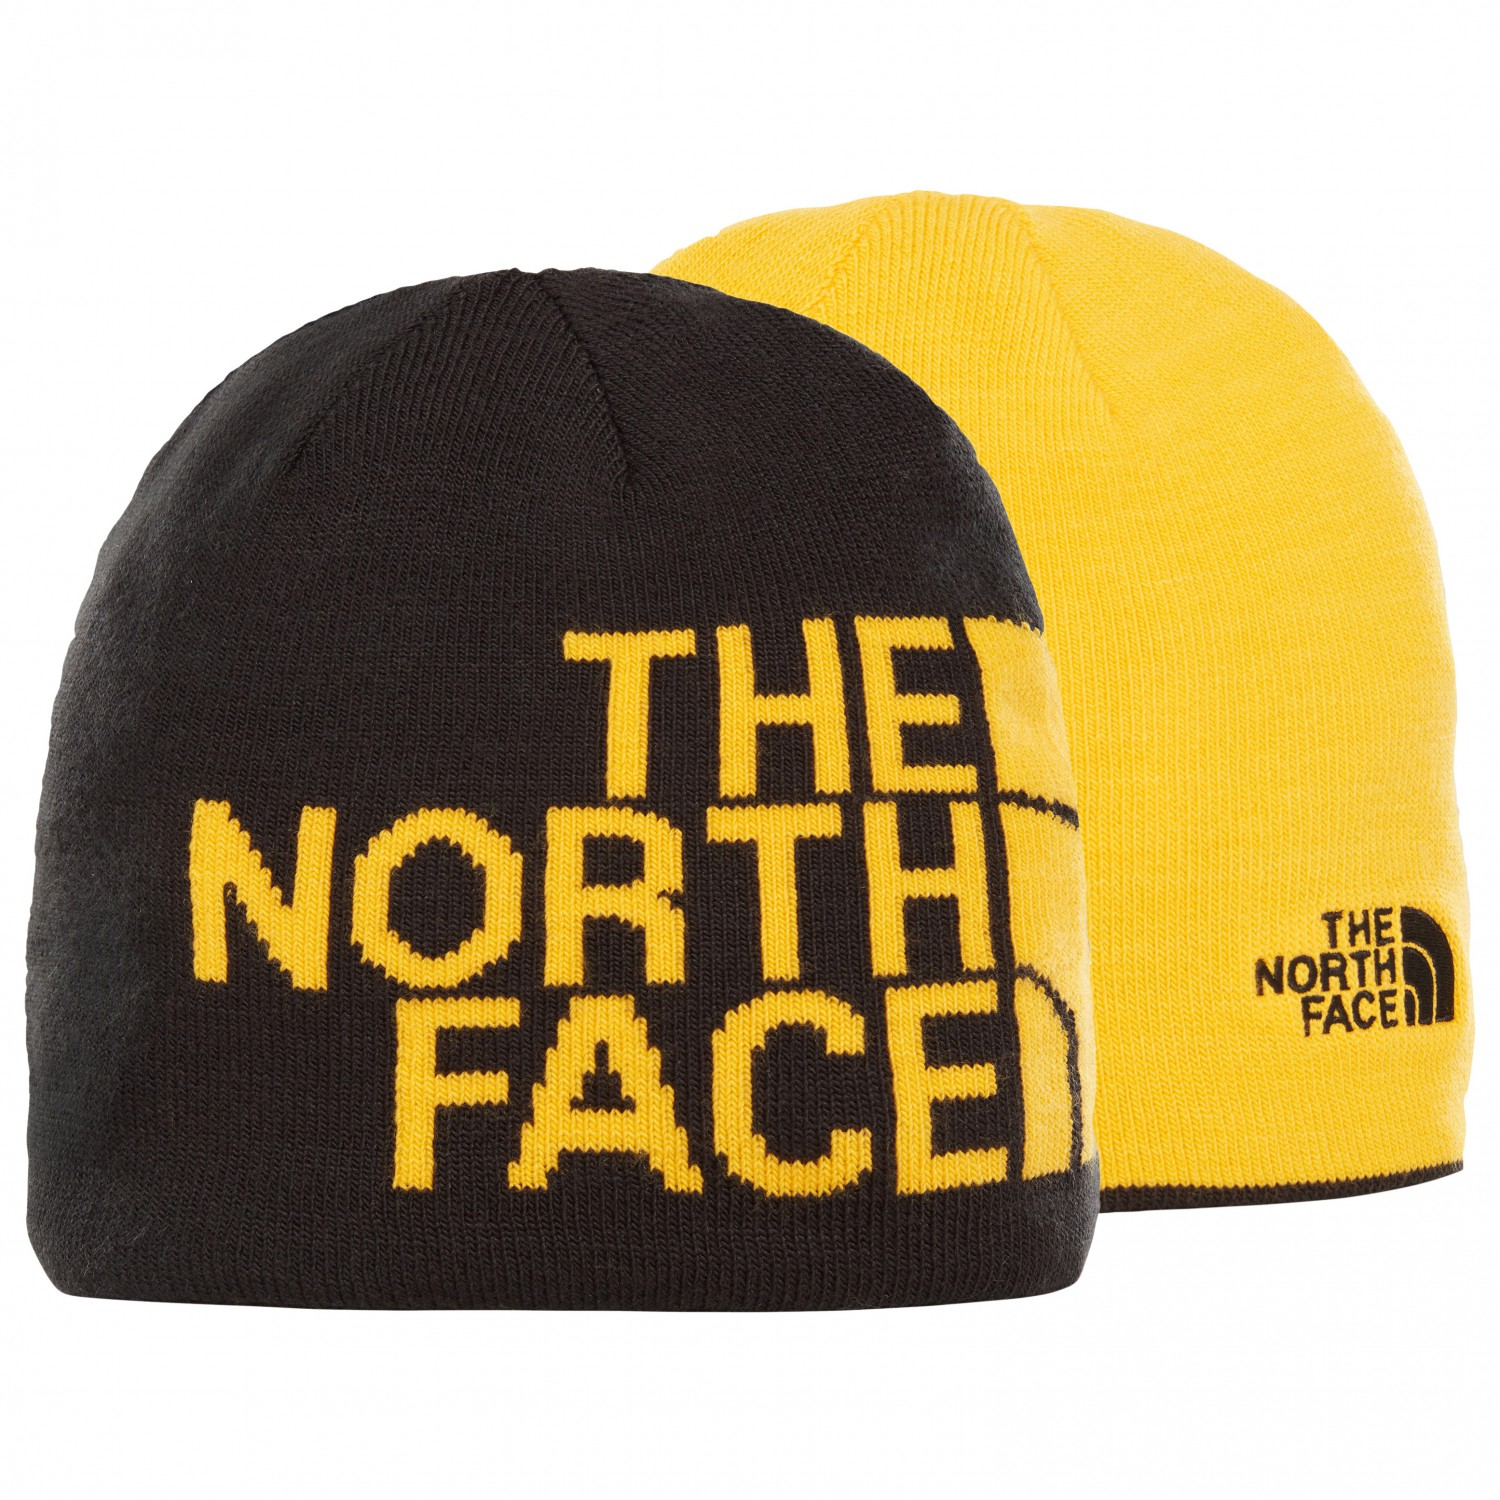 c5cf579753842 ... The North Face - Reversible TNF Banner Beanie - Gorro ...